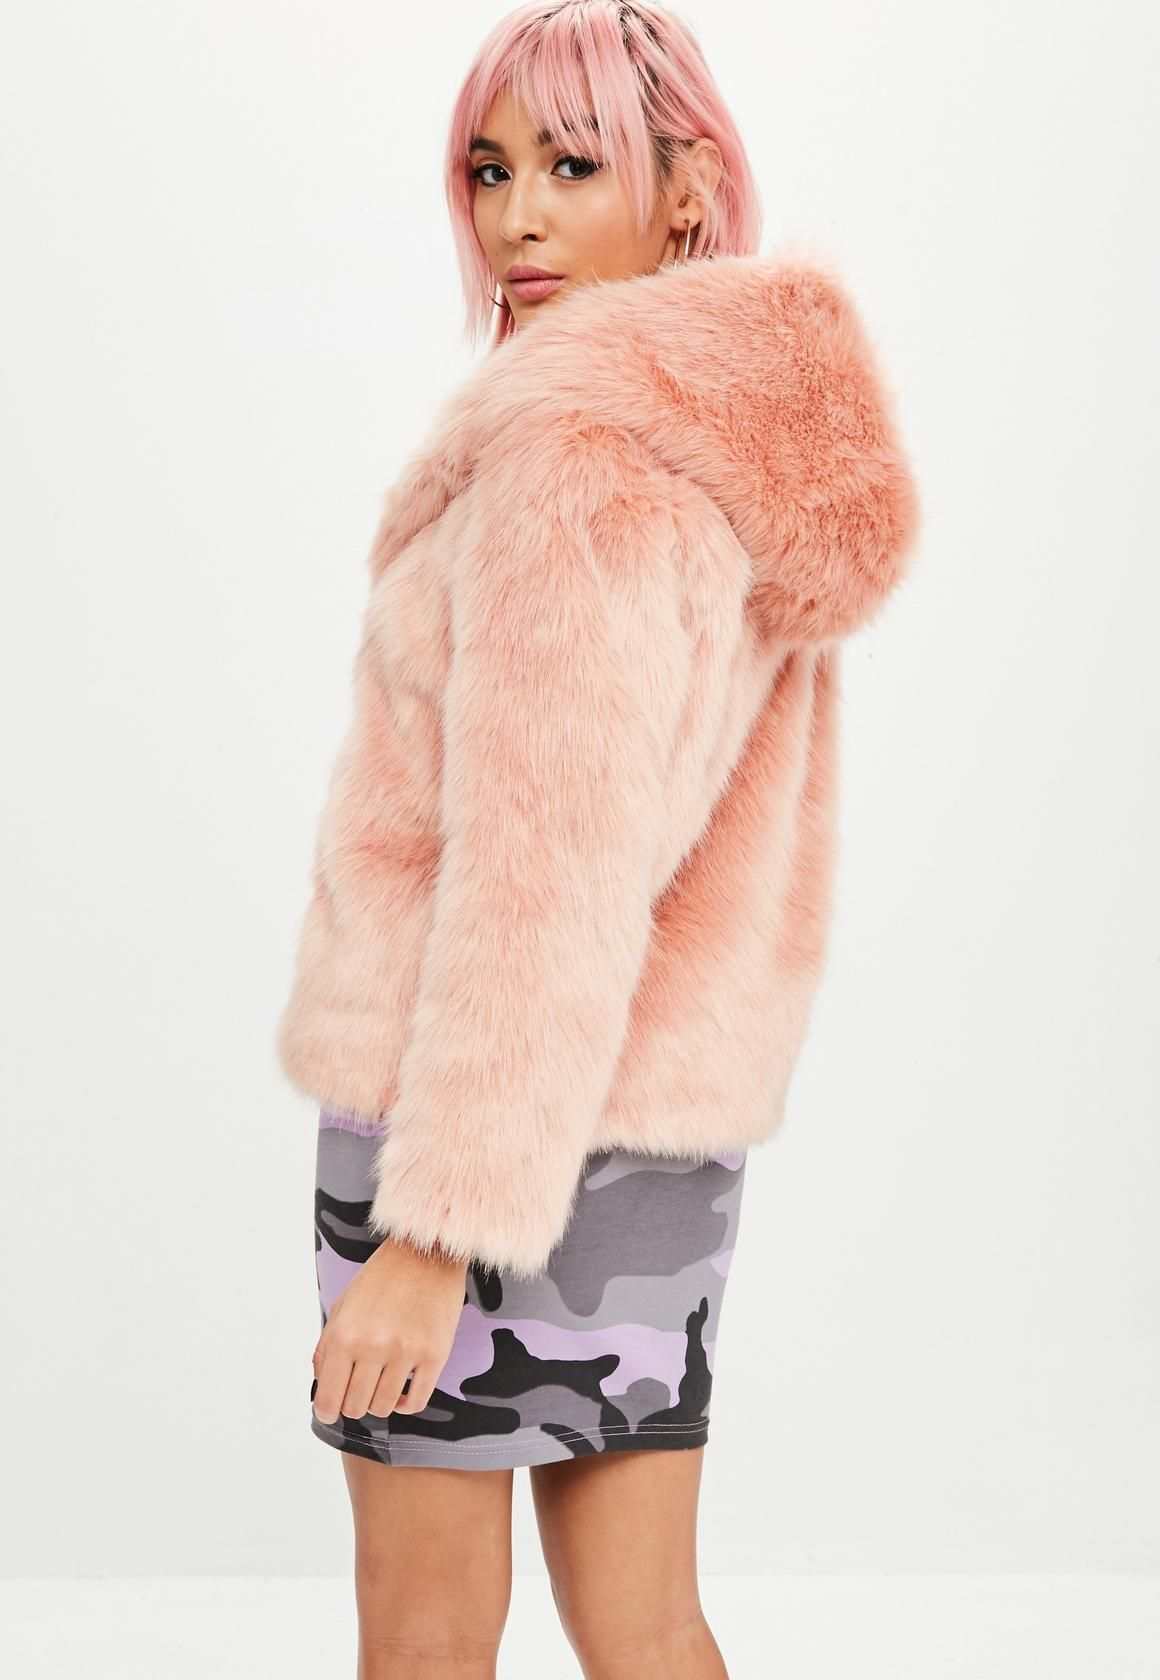 07e2fa3205a6 Missguided - Barbie x Missguided Pink Faux Fur Coat | Missguided ...